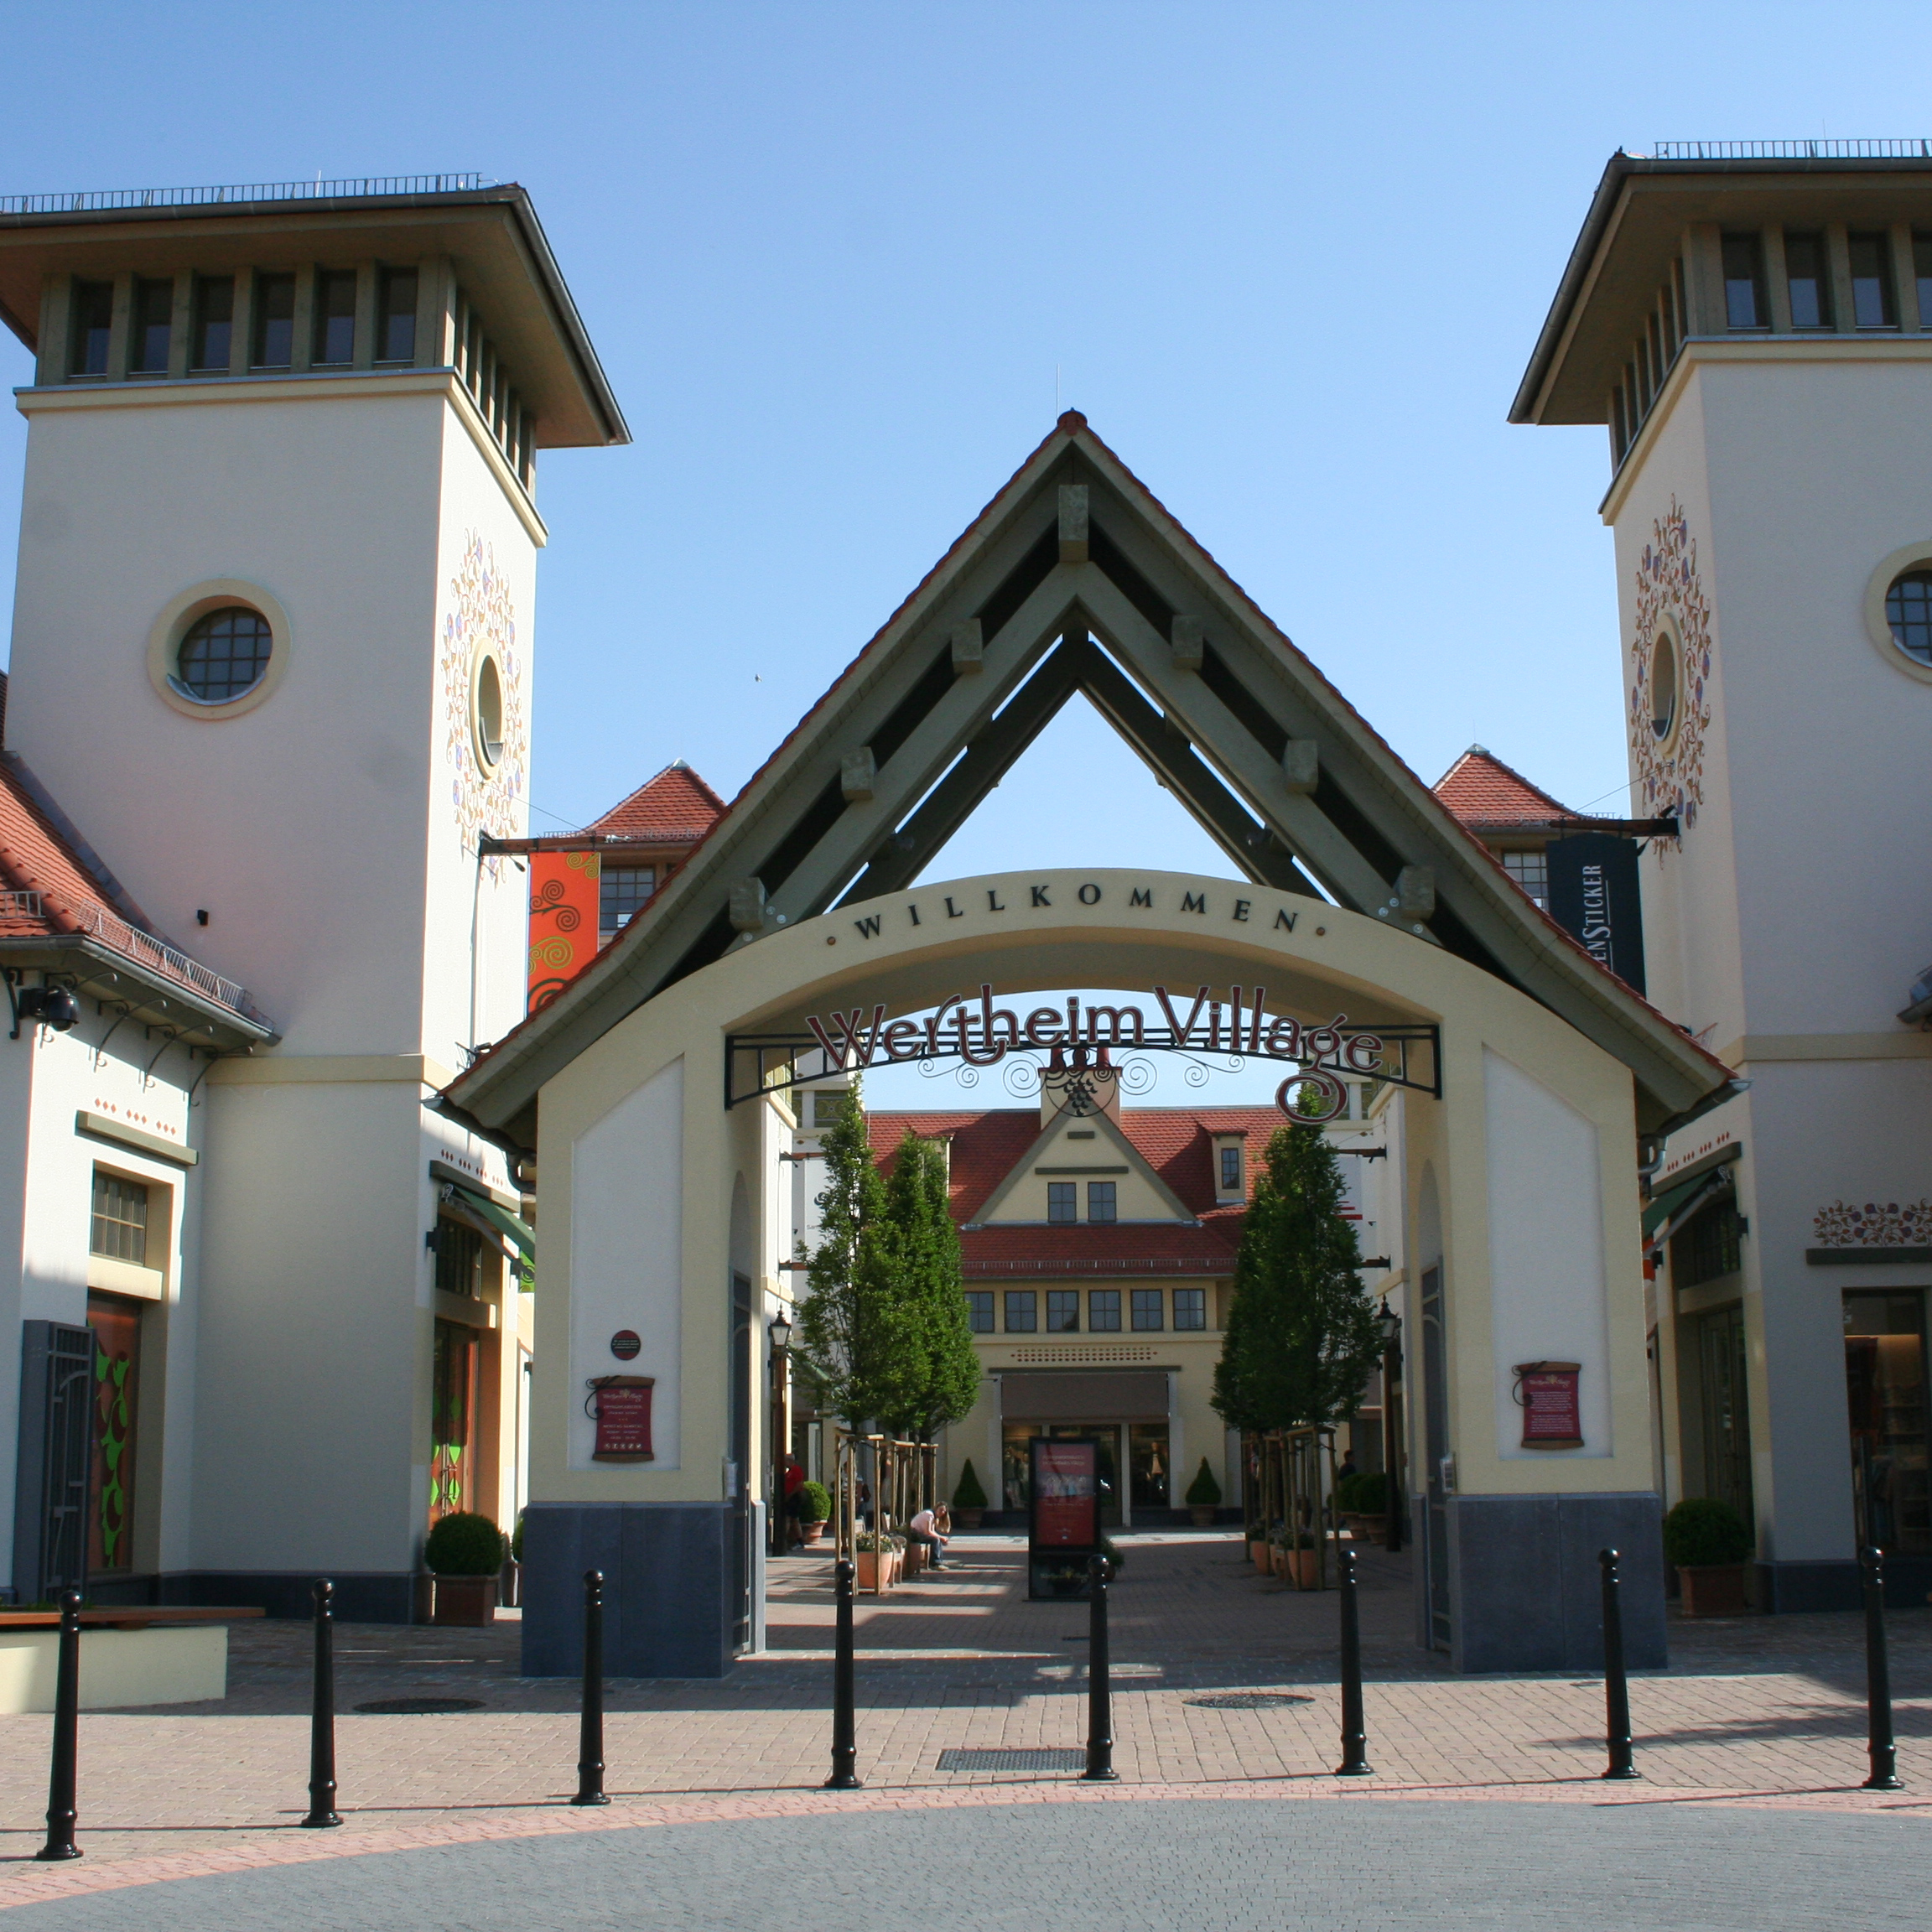 Designer Outlet Center, Wertheim